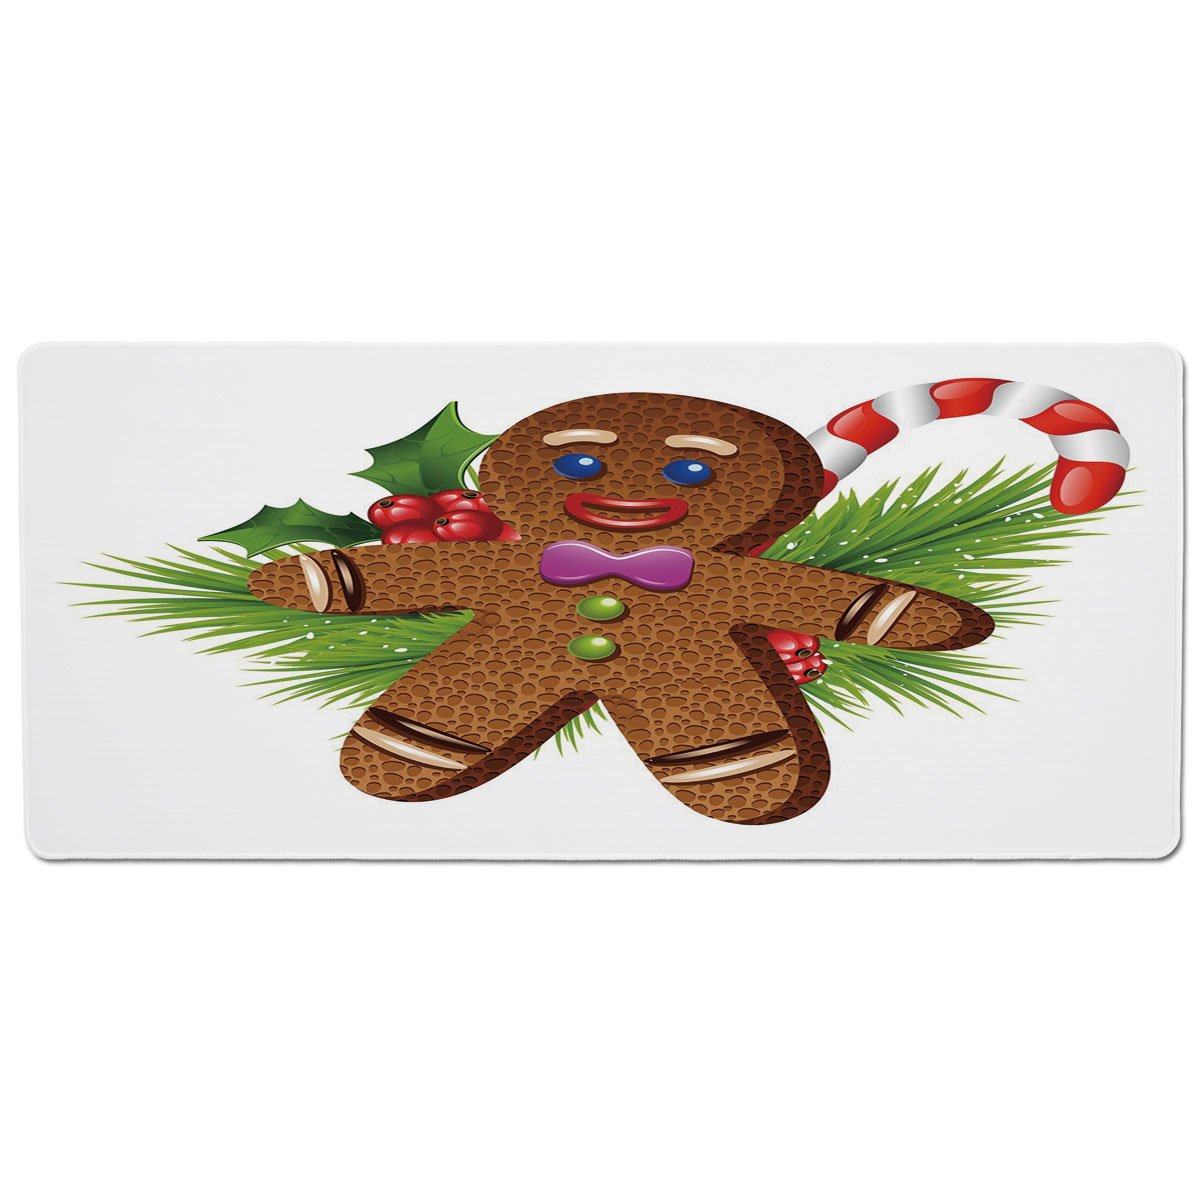 35.4\ iPrint Pet Mat for Food and Water,Gingerbread Man,Cute Tasty Pastry on Coniferous Branches Candy Cane and Holly Berry Decorative,Brown Green Red,Rectangle Non-Slip Rubber Mat for Dogs and Cats